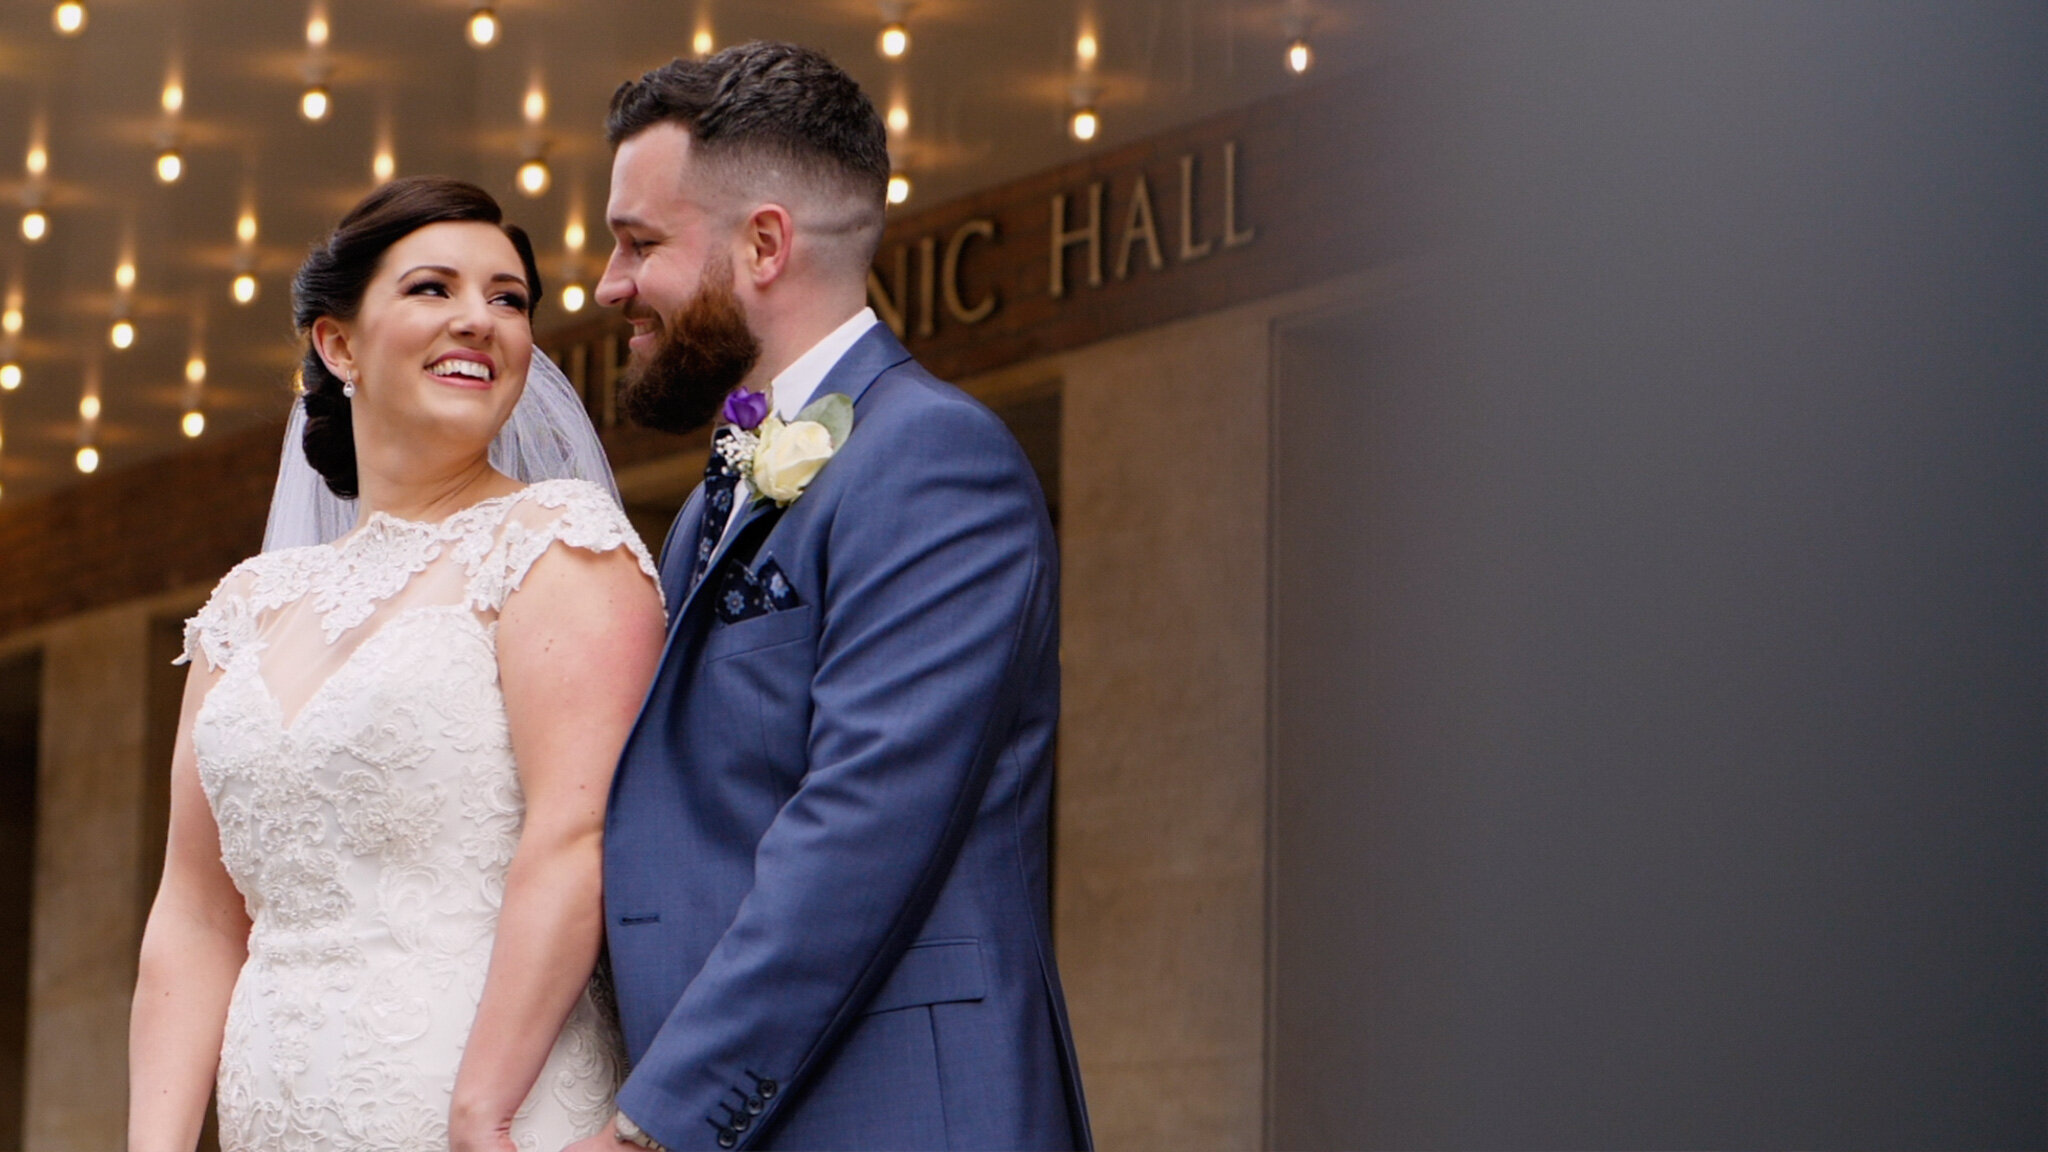 North West Wedding Videographer captures the bride and groom outside Philharmonic Hall, Liverpool.